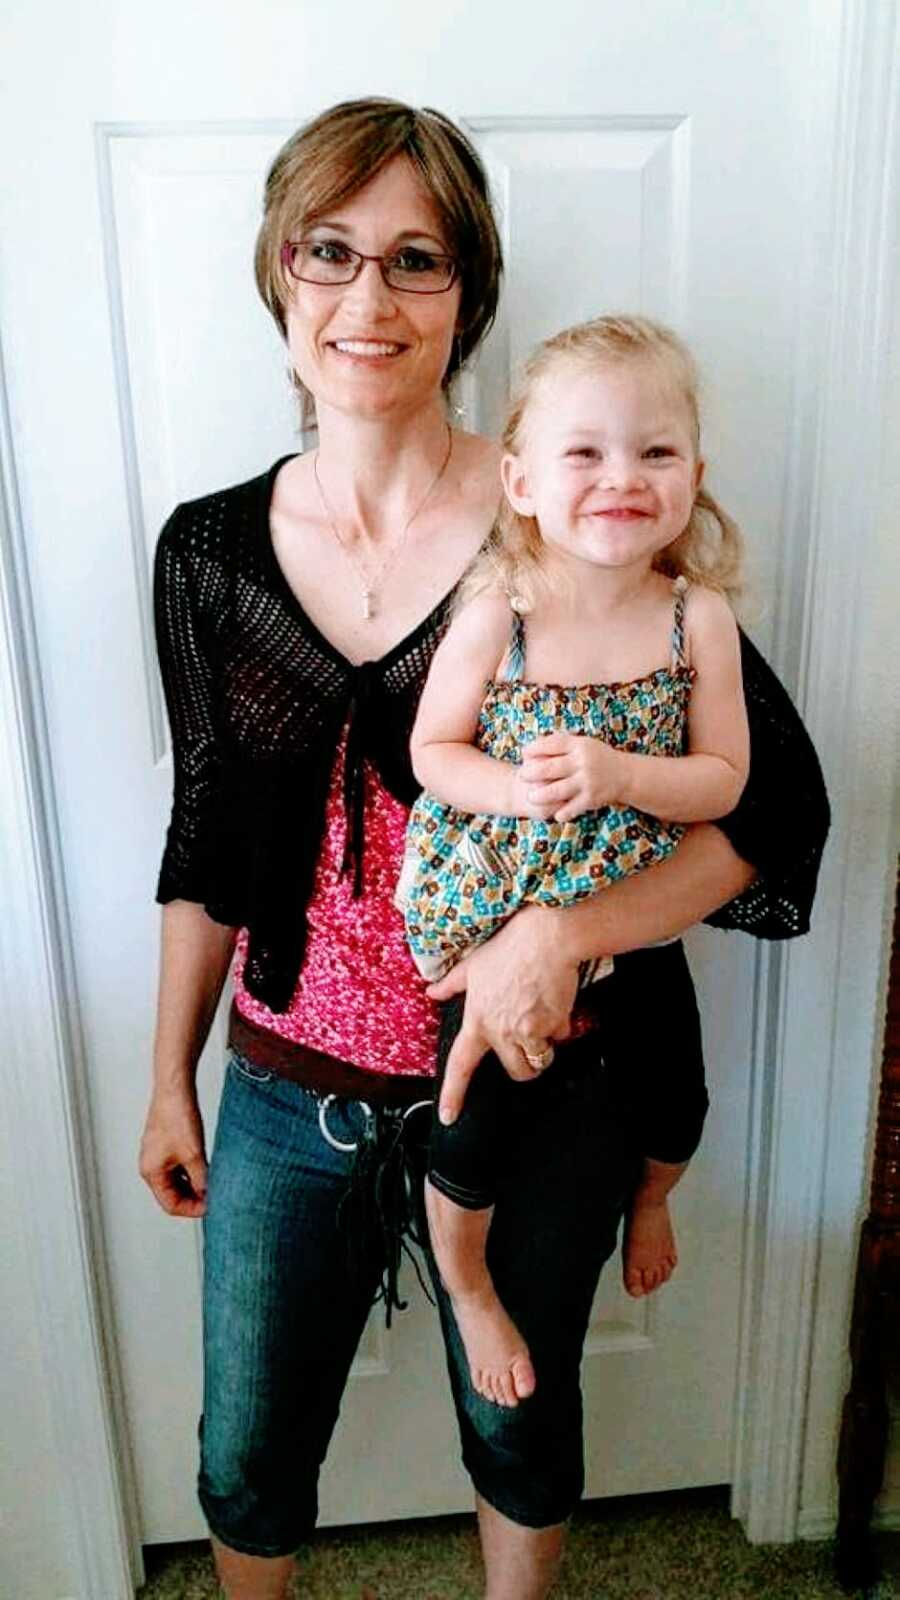 Mom of 4 holds her young daughter as they both grin at the camera